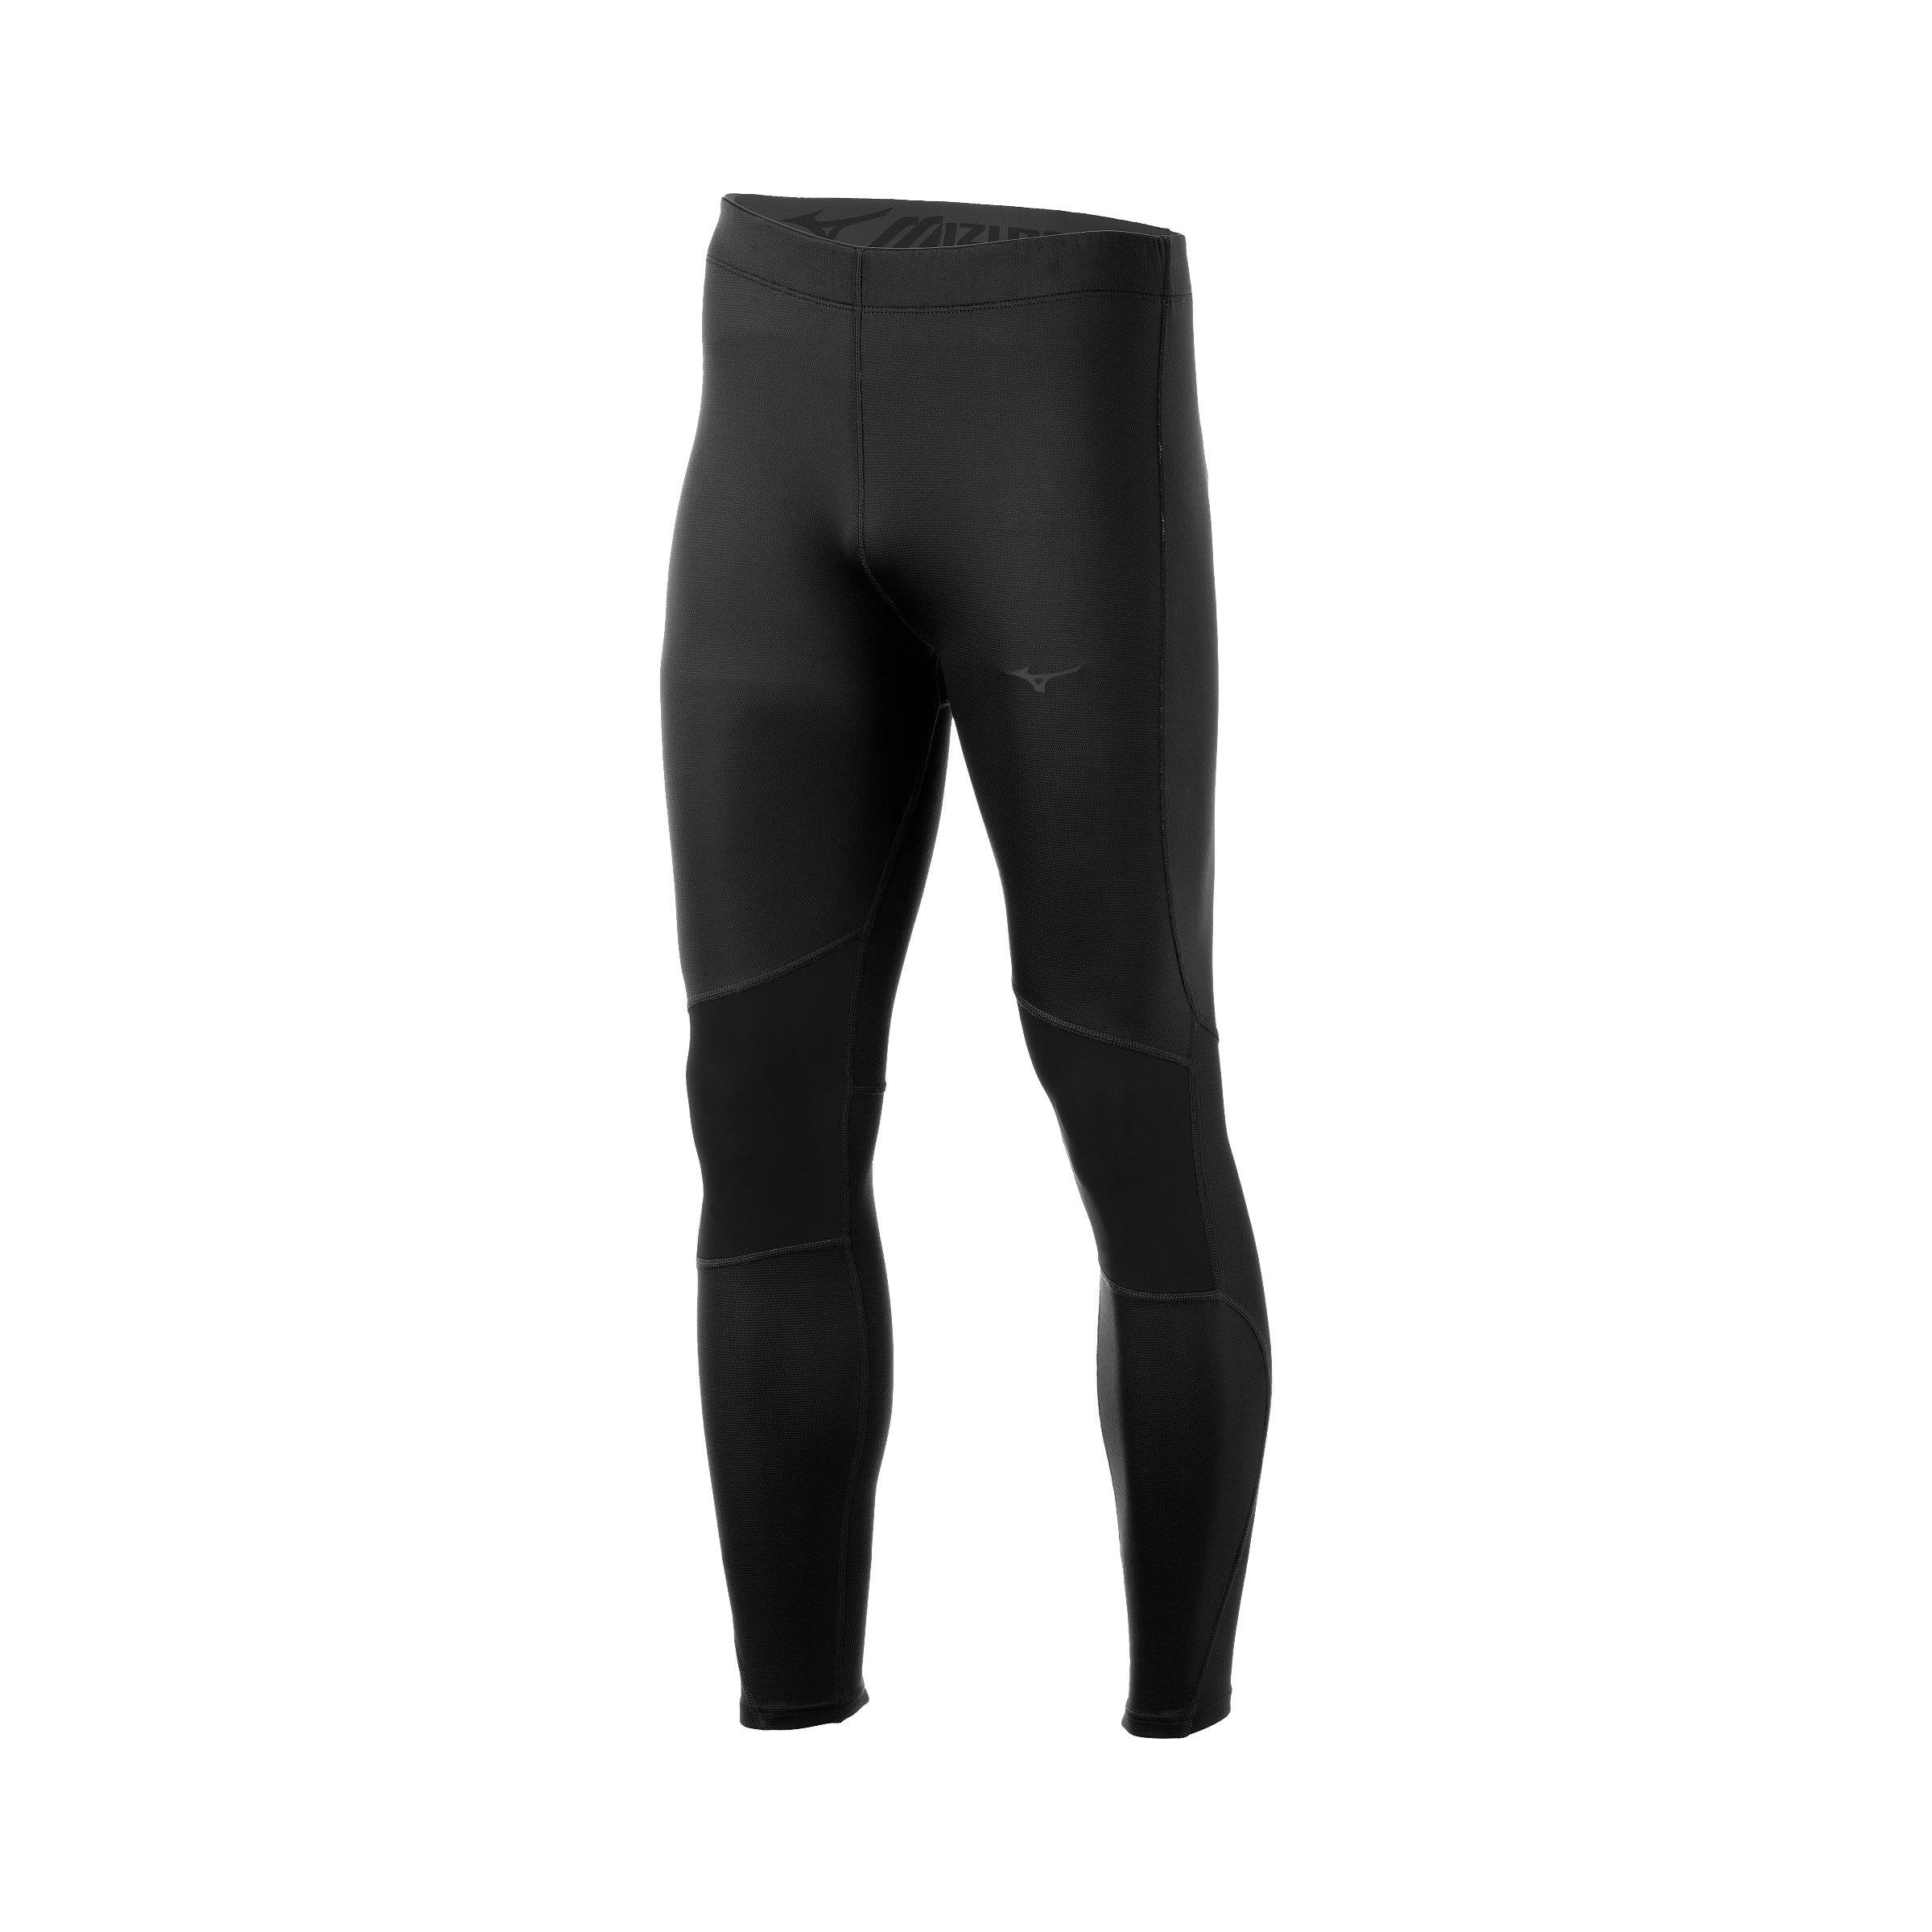 Mizuno Men's Breath Thermo Tight - Black, Large